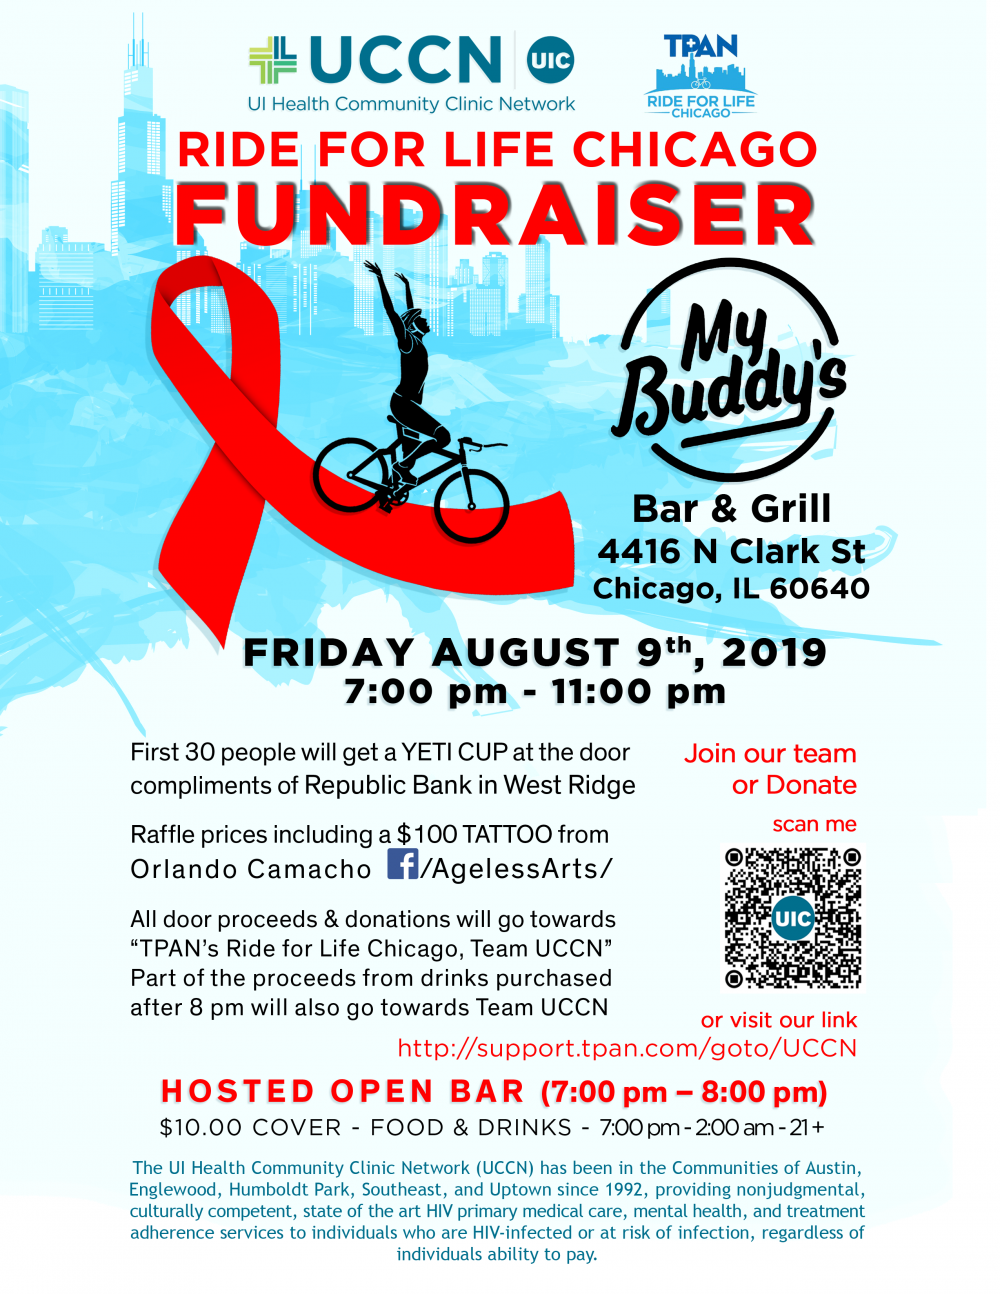 Fun evening out for a good cause | UIC Today